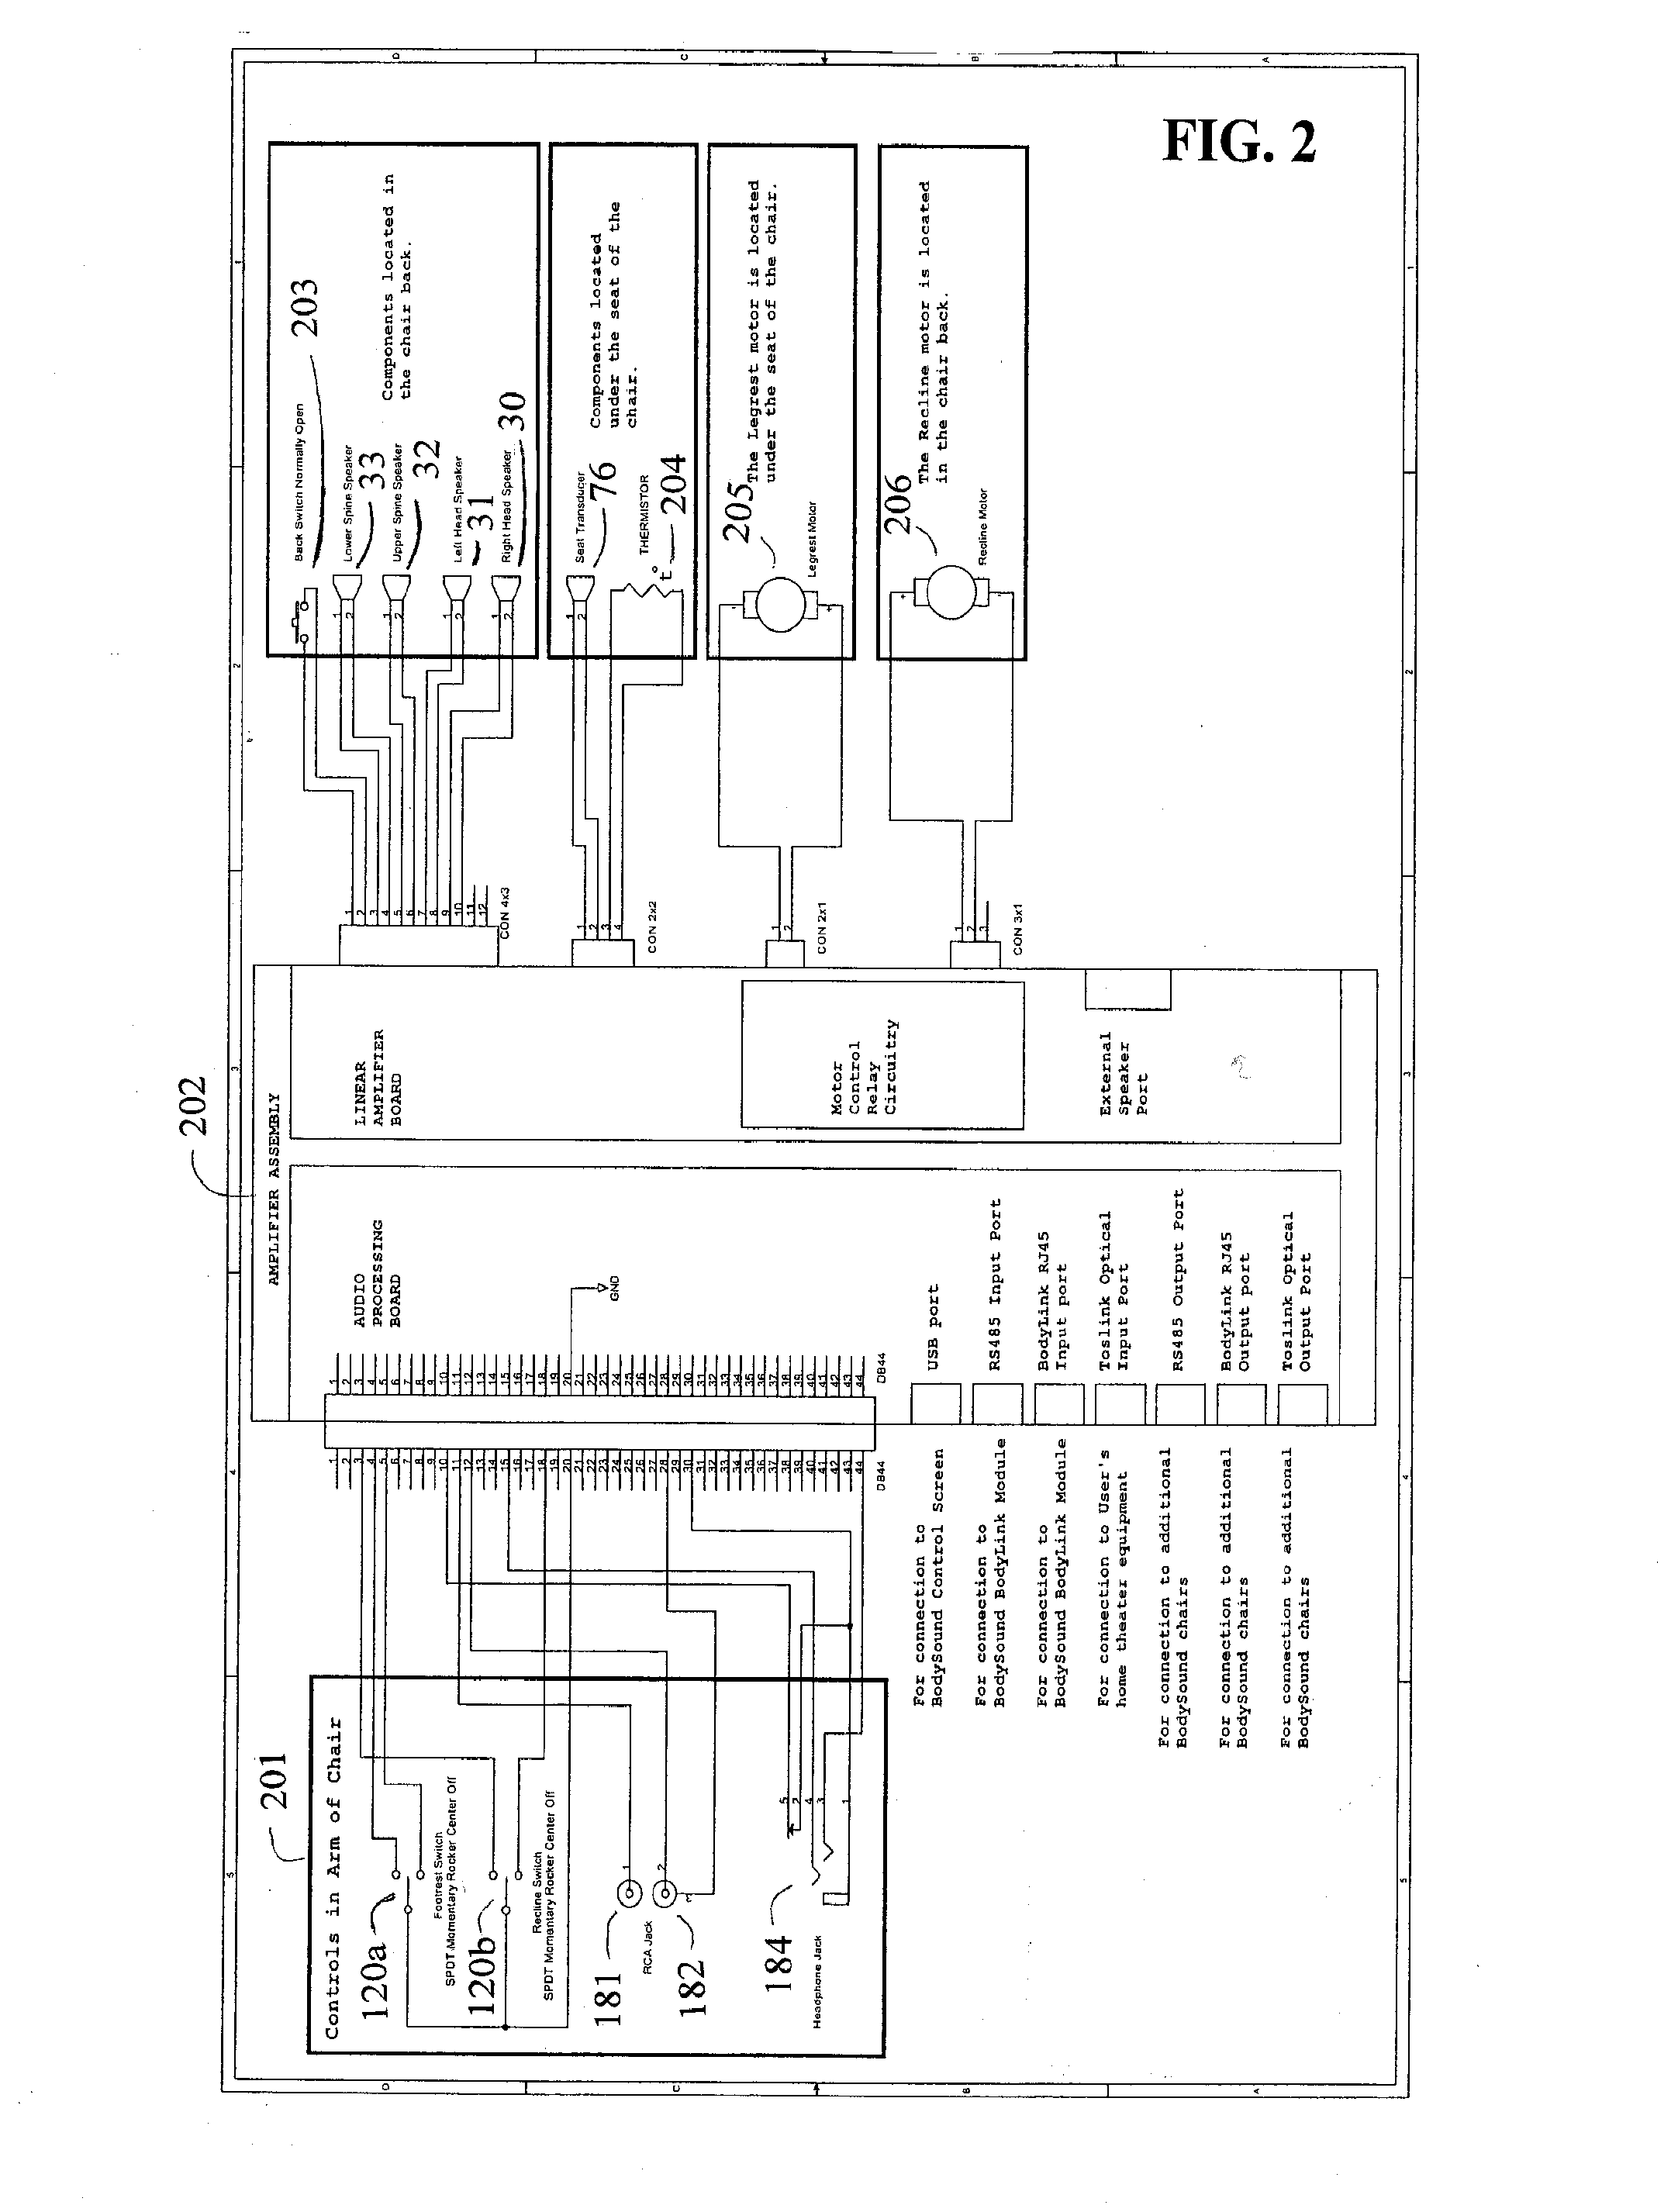 2001 Lexus Gs430 Radio Wiring Diagram Lx470 Daily Update Es330 Fuse Box Auto Harness For Gs